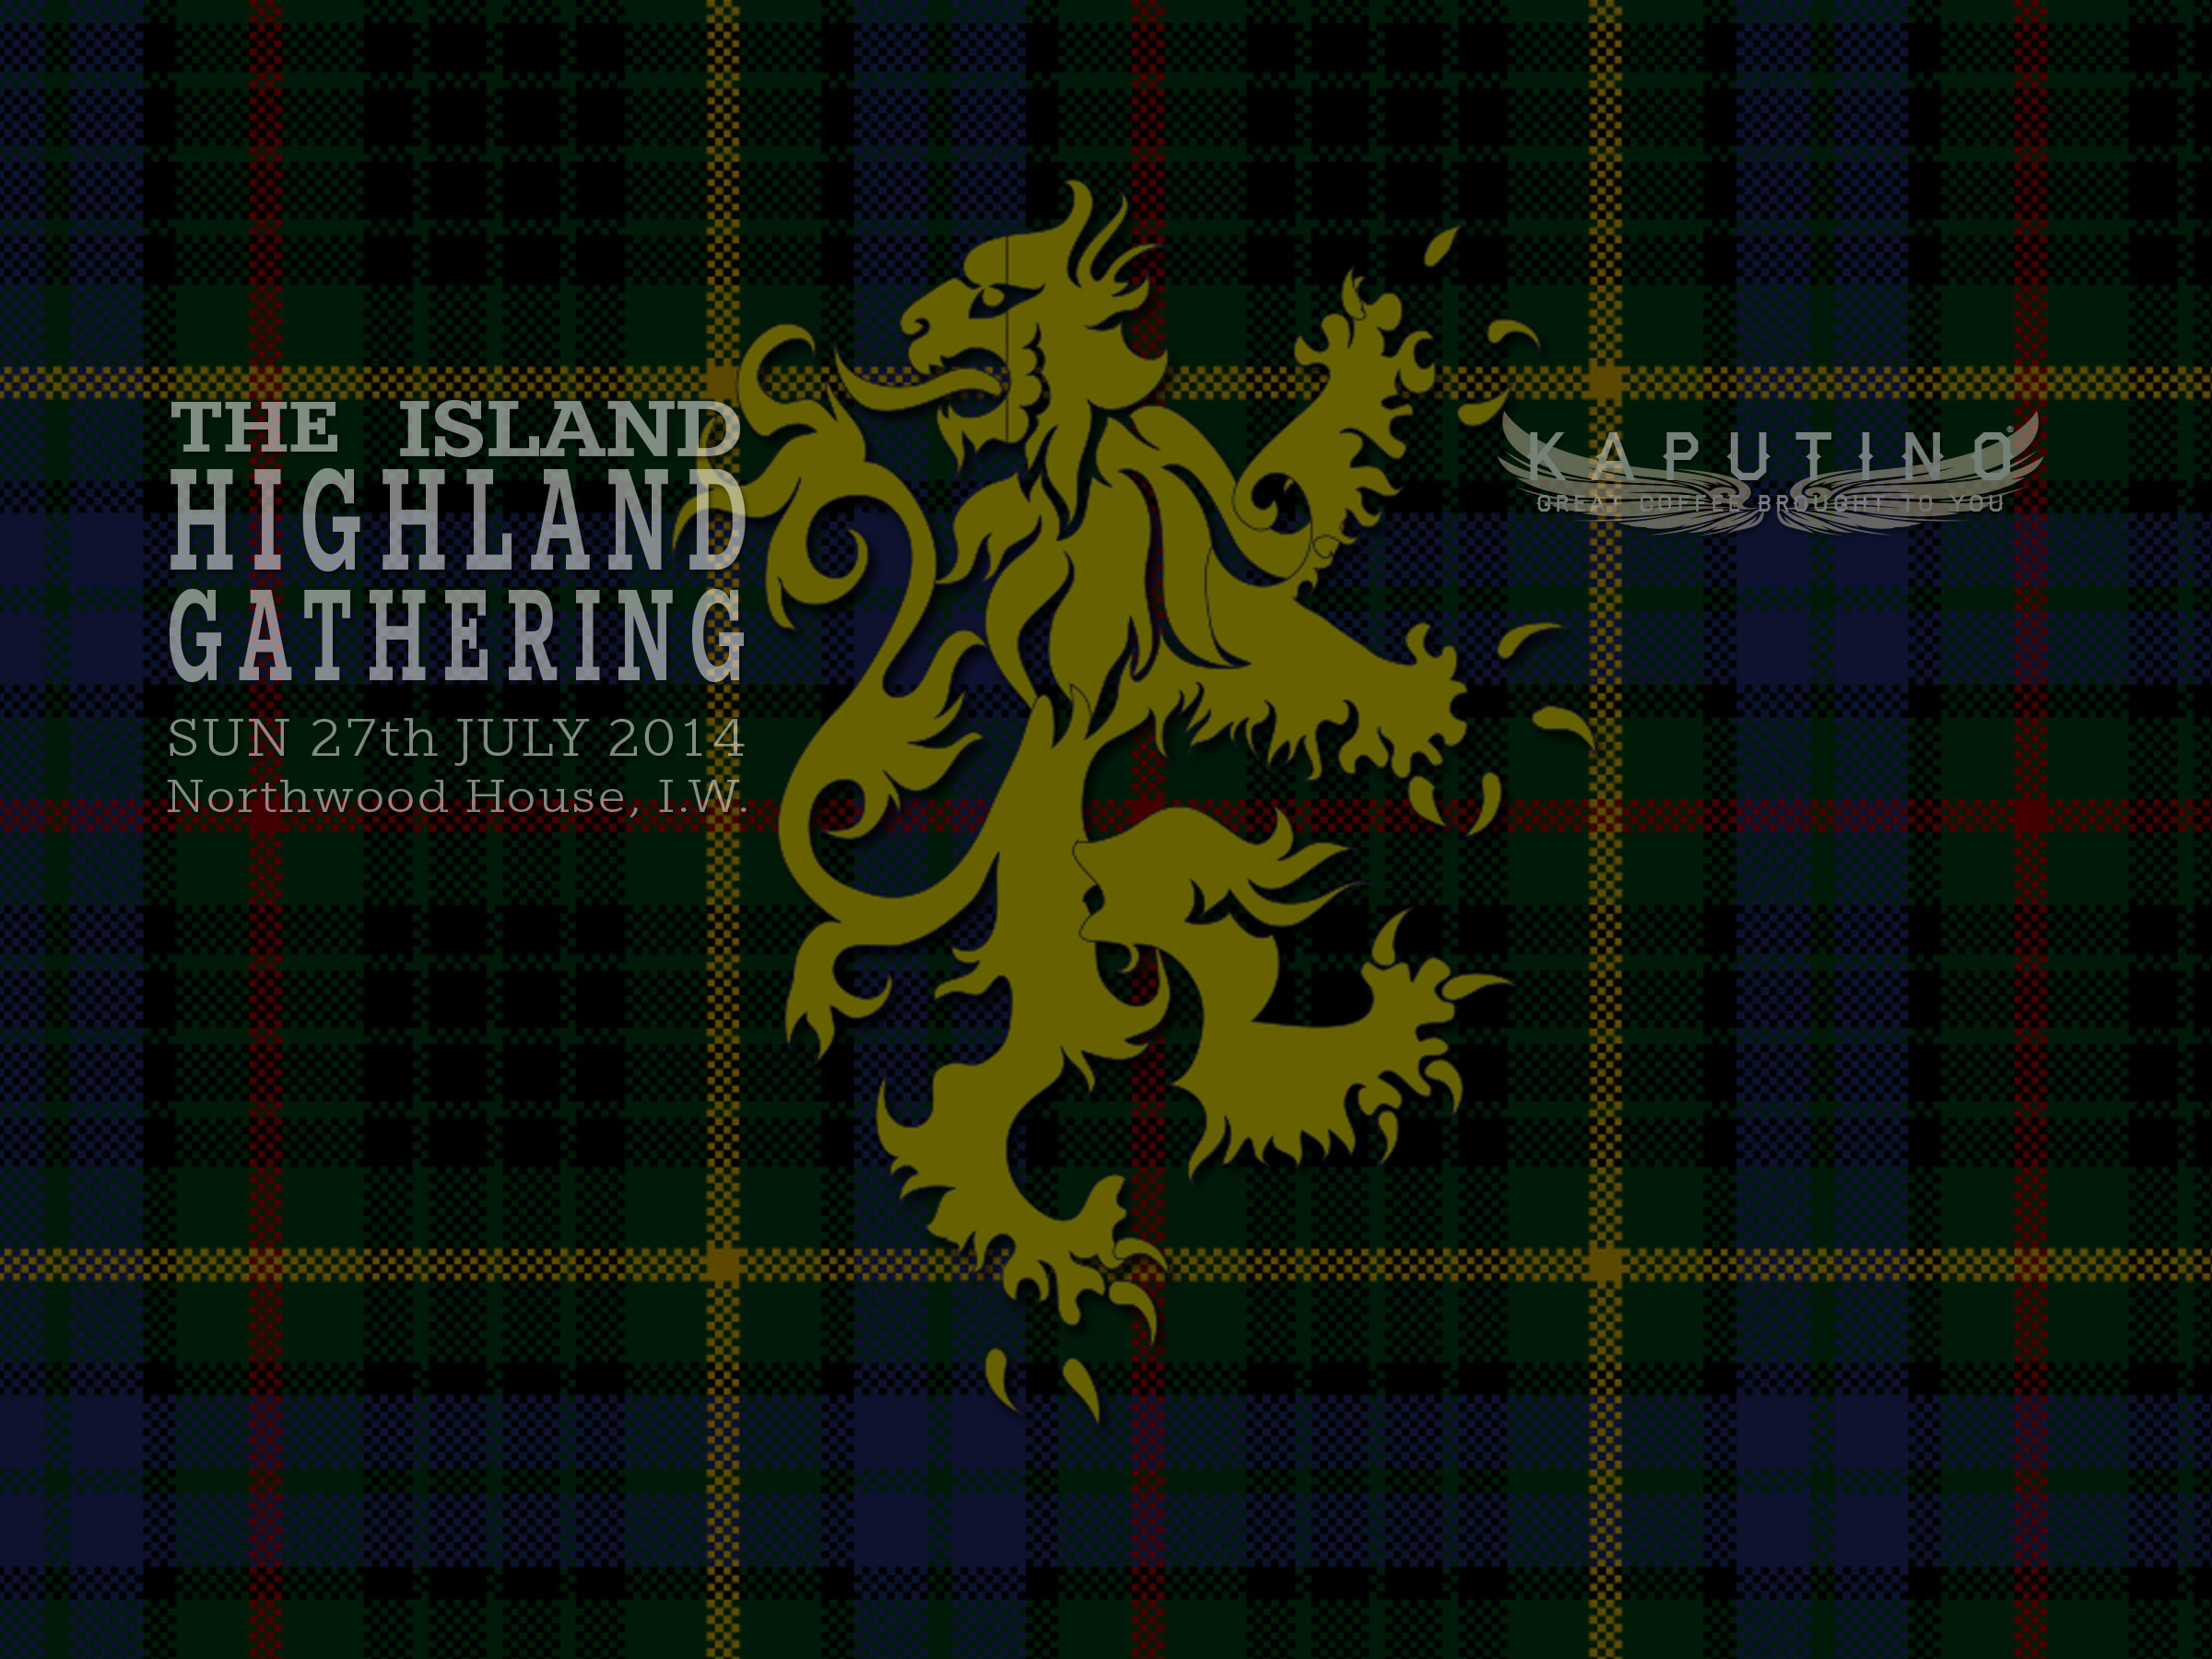 island-highland-gathering-2014-with-kaputino-coffee